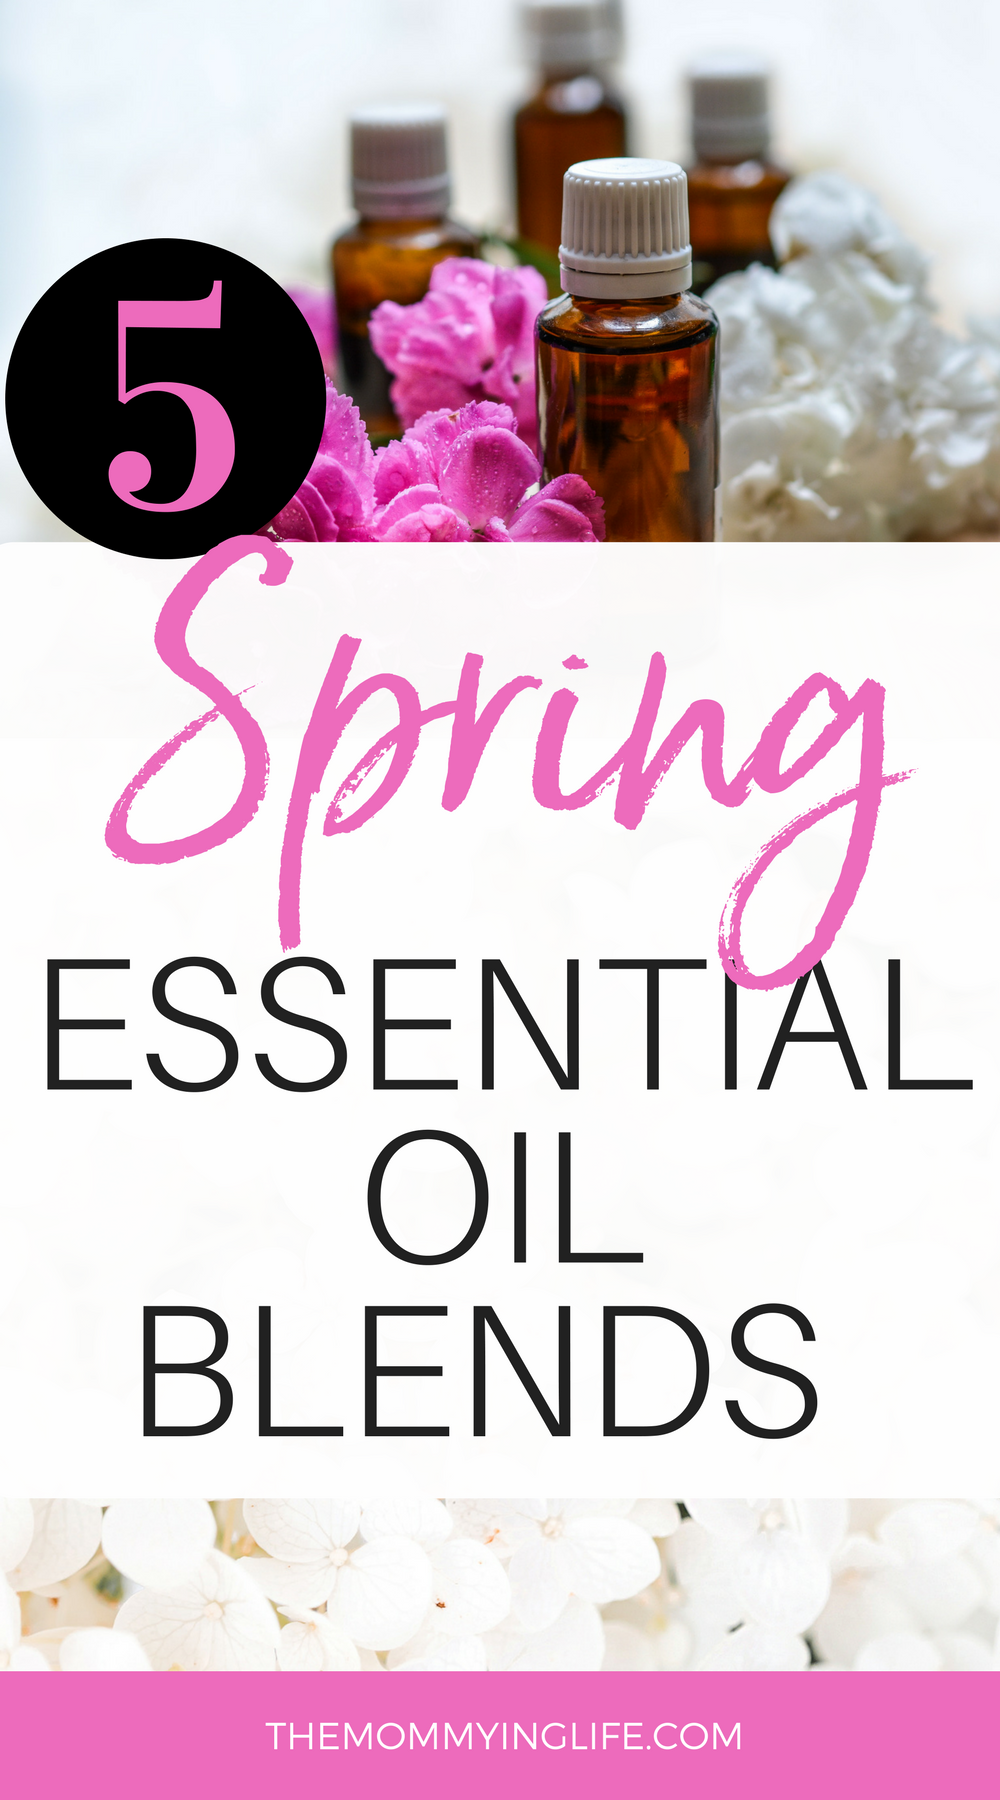 Essential Oil Blends for Spring.png